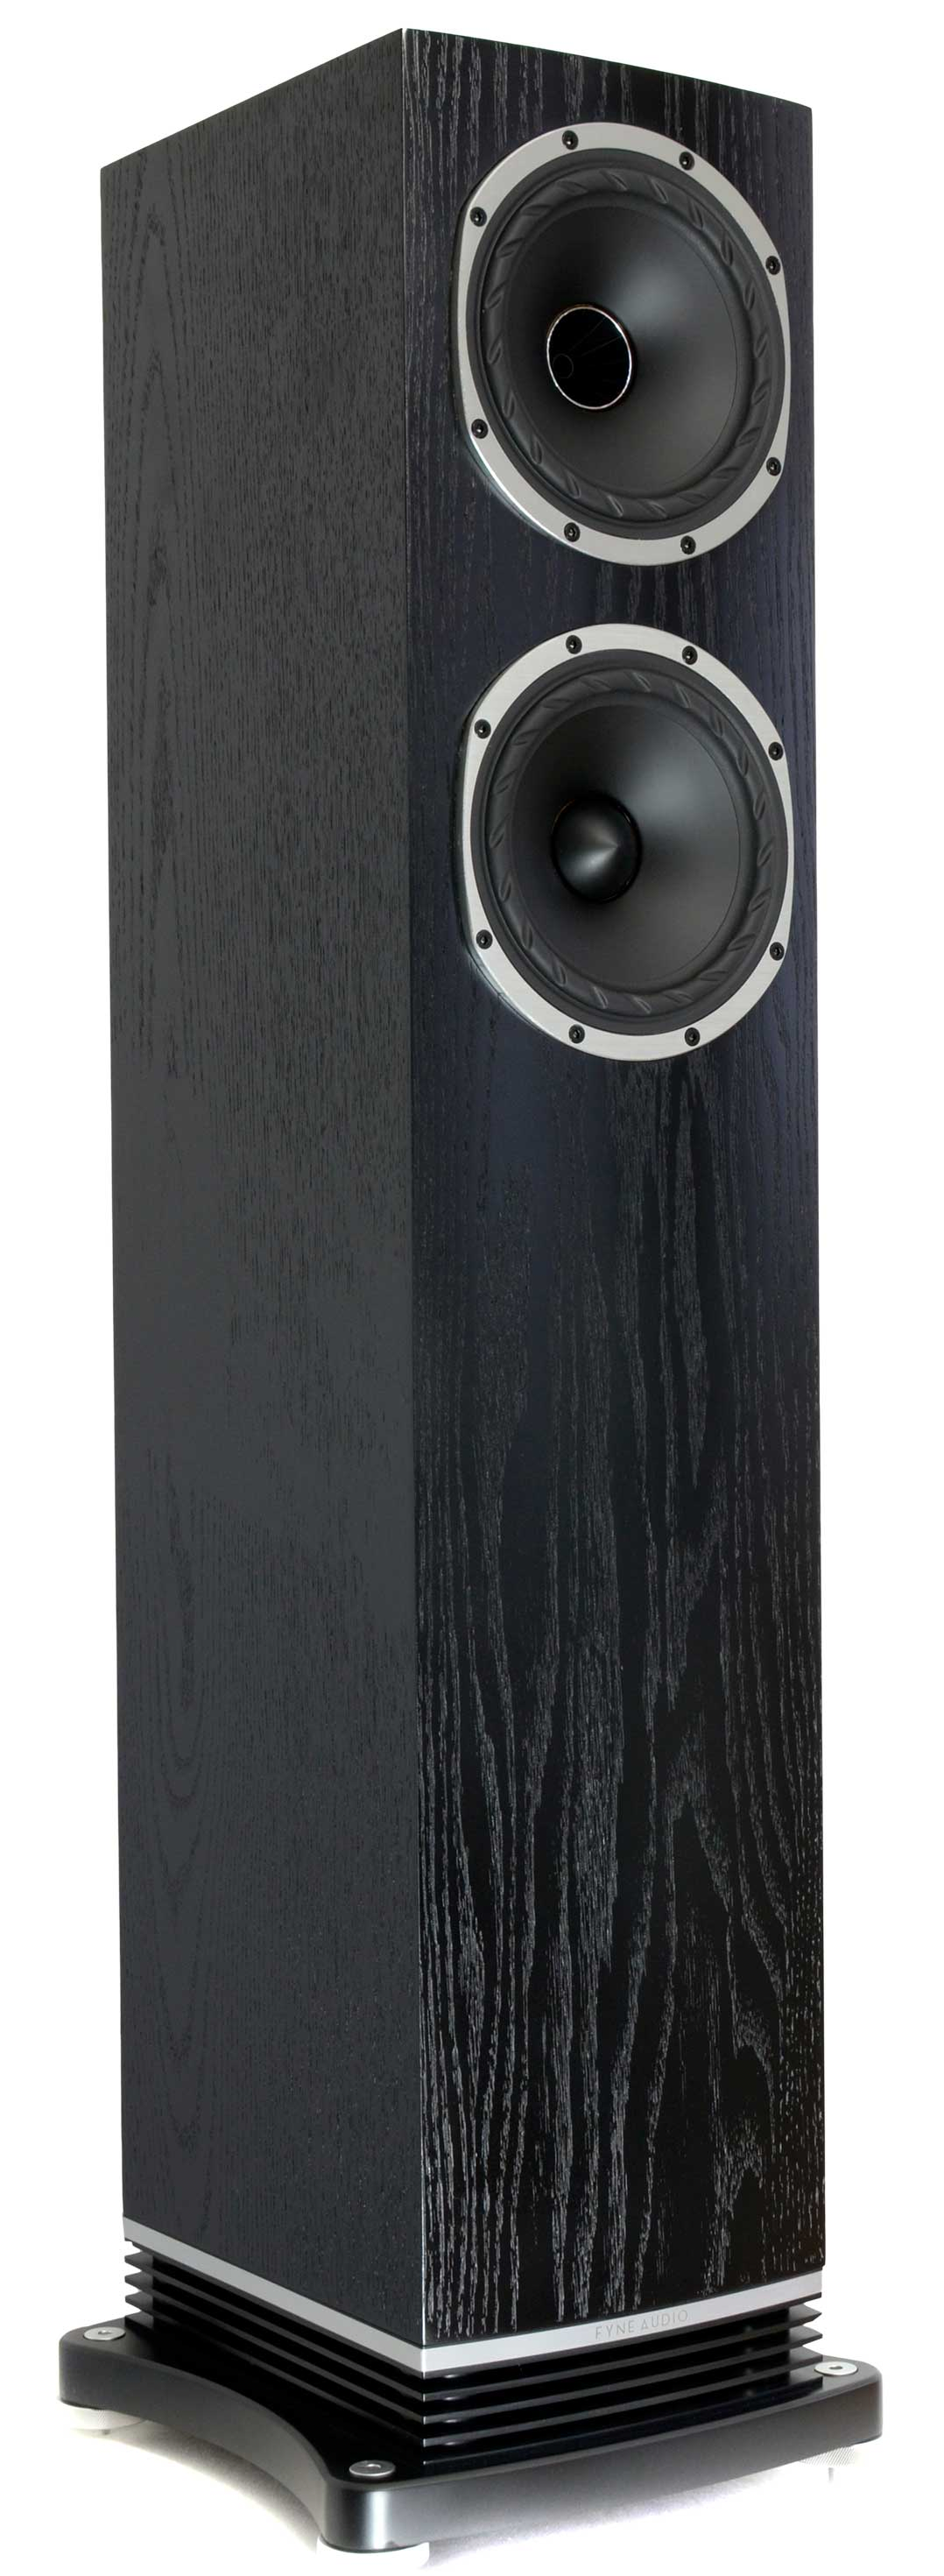 Fyne Audio F501, solo